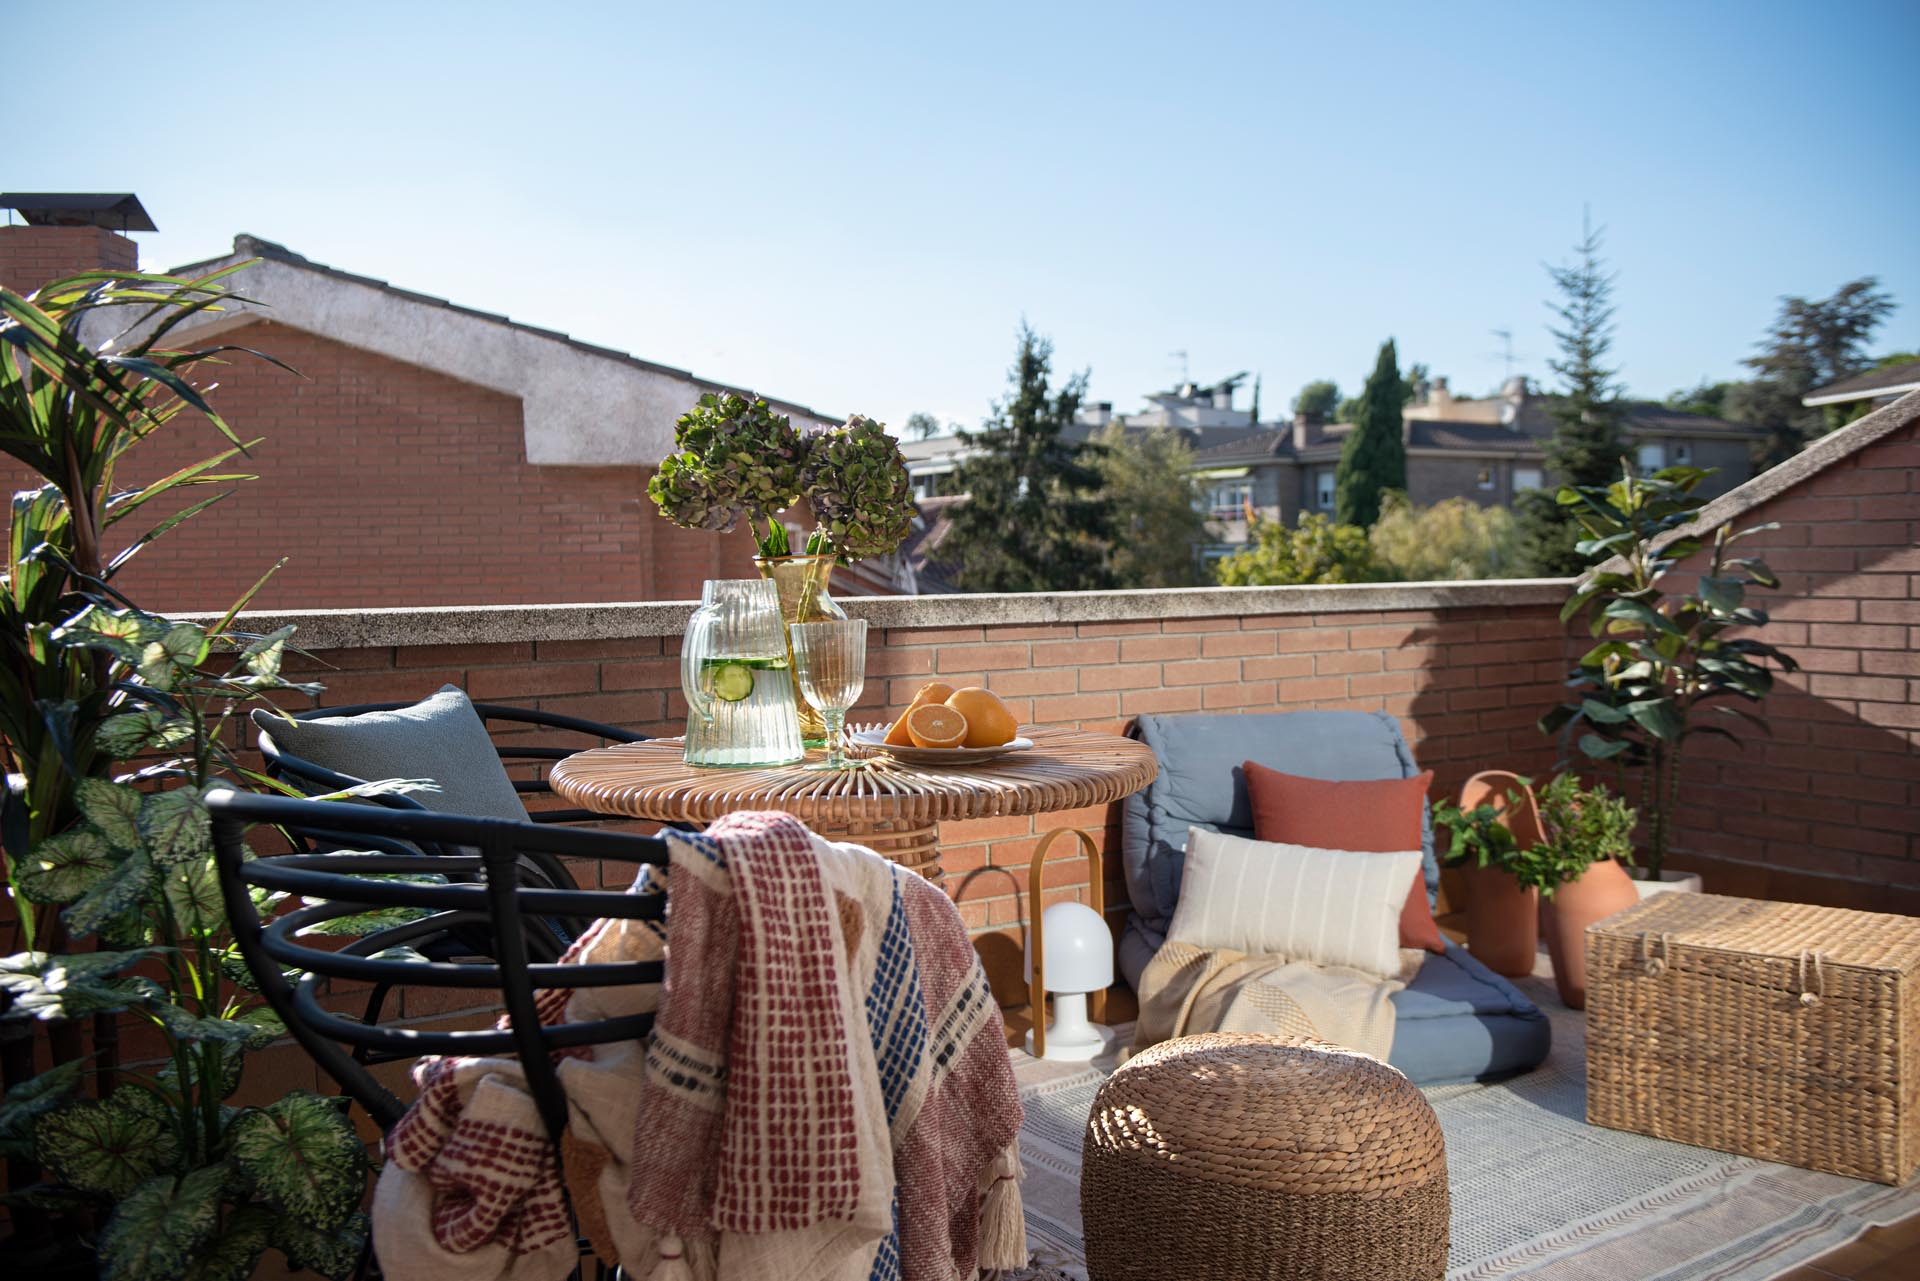 A sliding door opens to a balcony with views of the neighborhood. A small table with chairs, as well as an outdoor rug and low cushion furniture gives the space multiple uses.